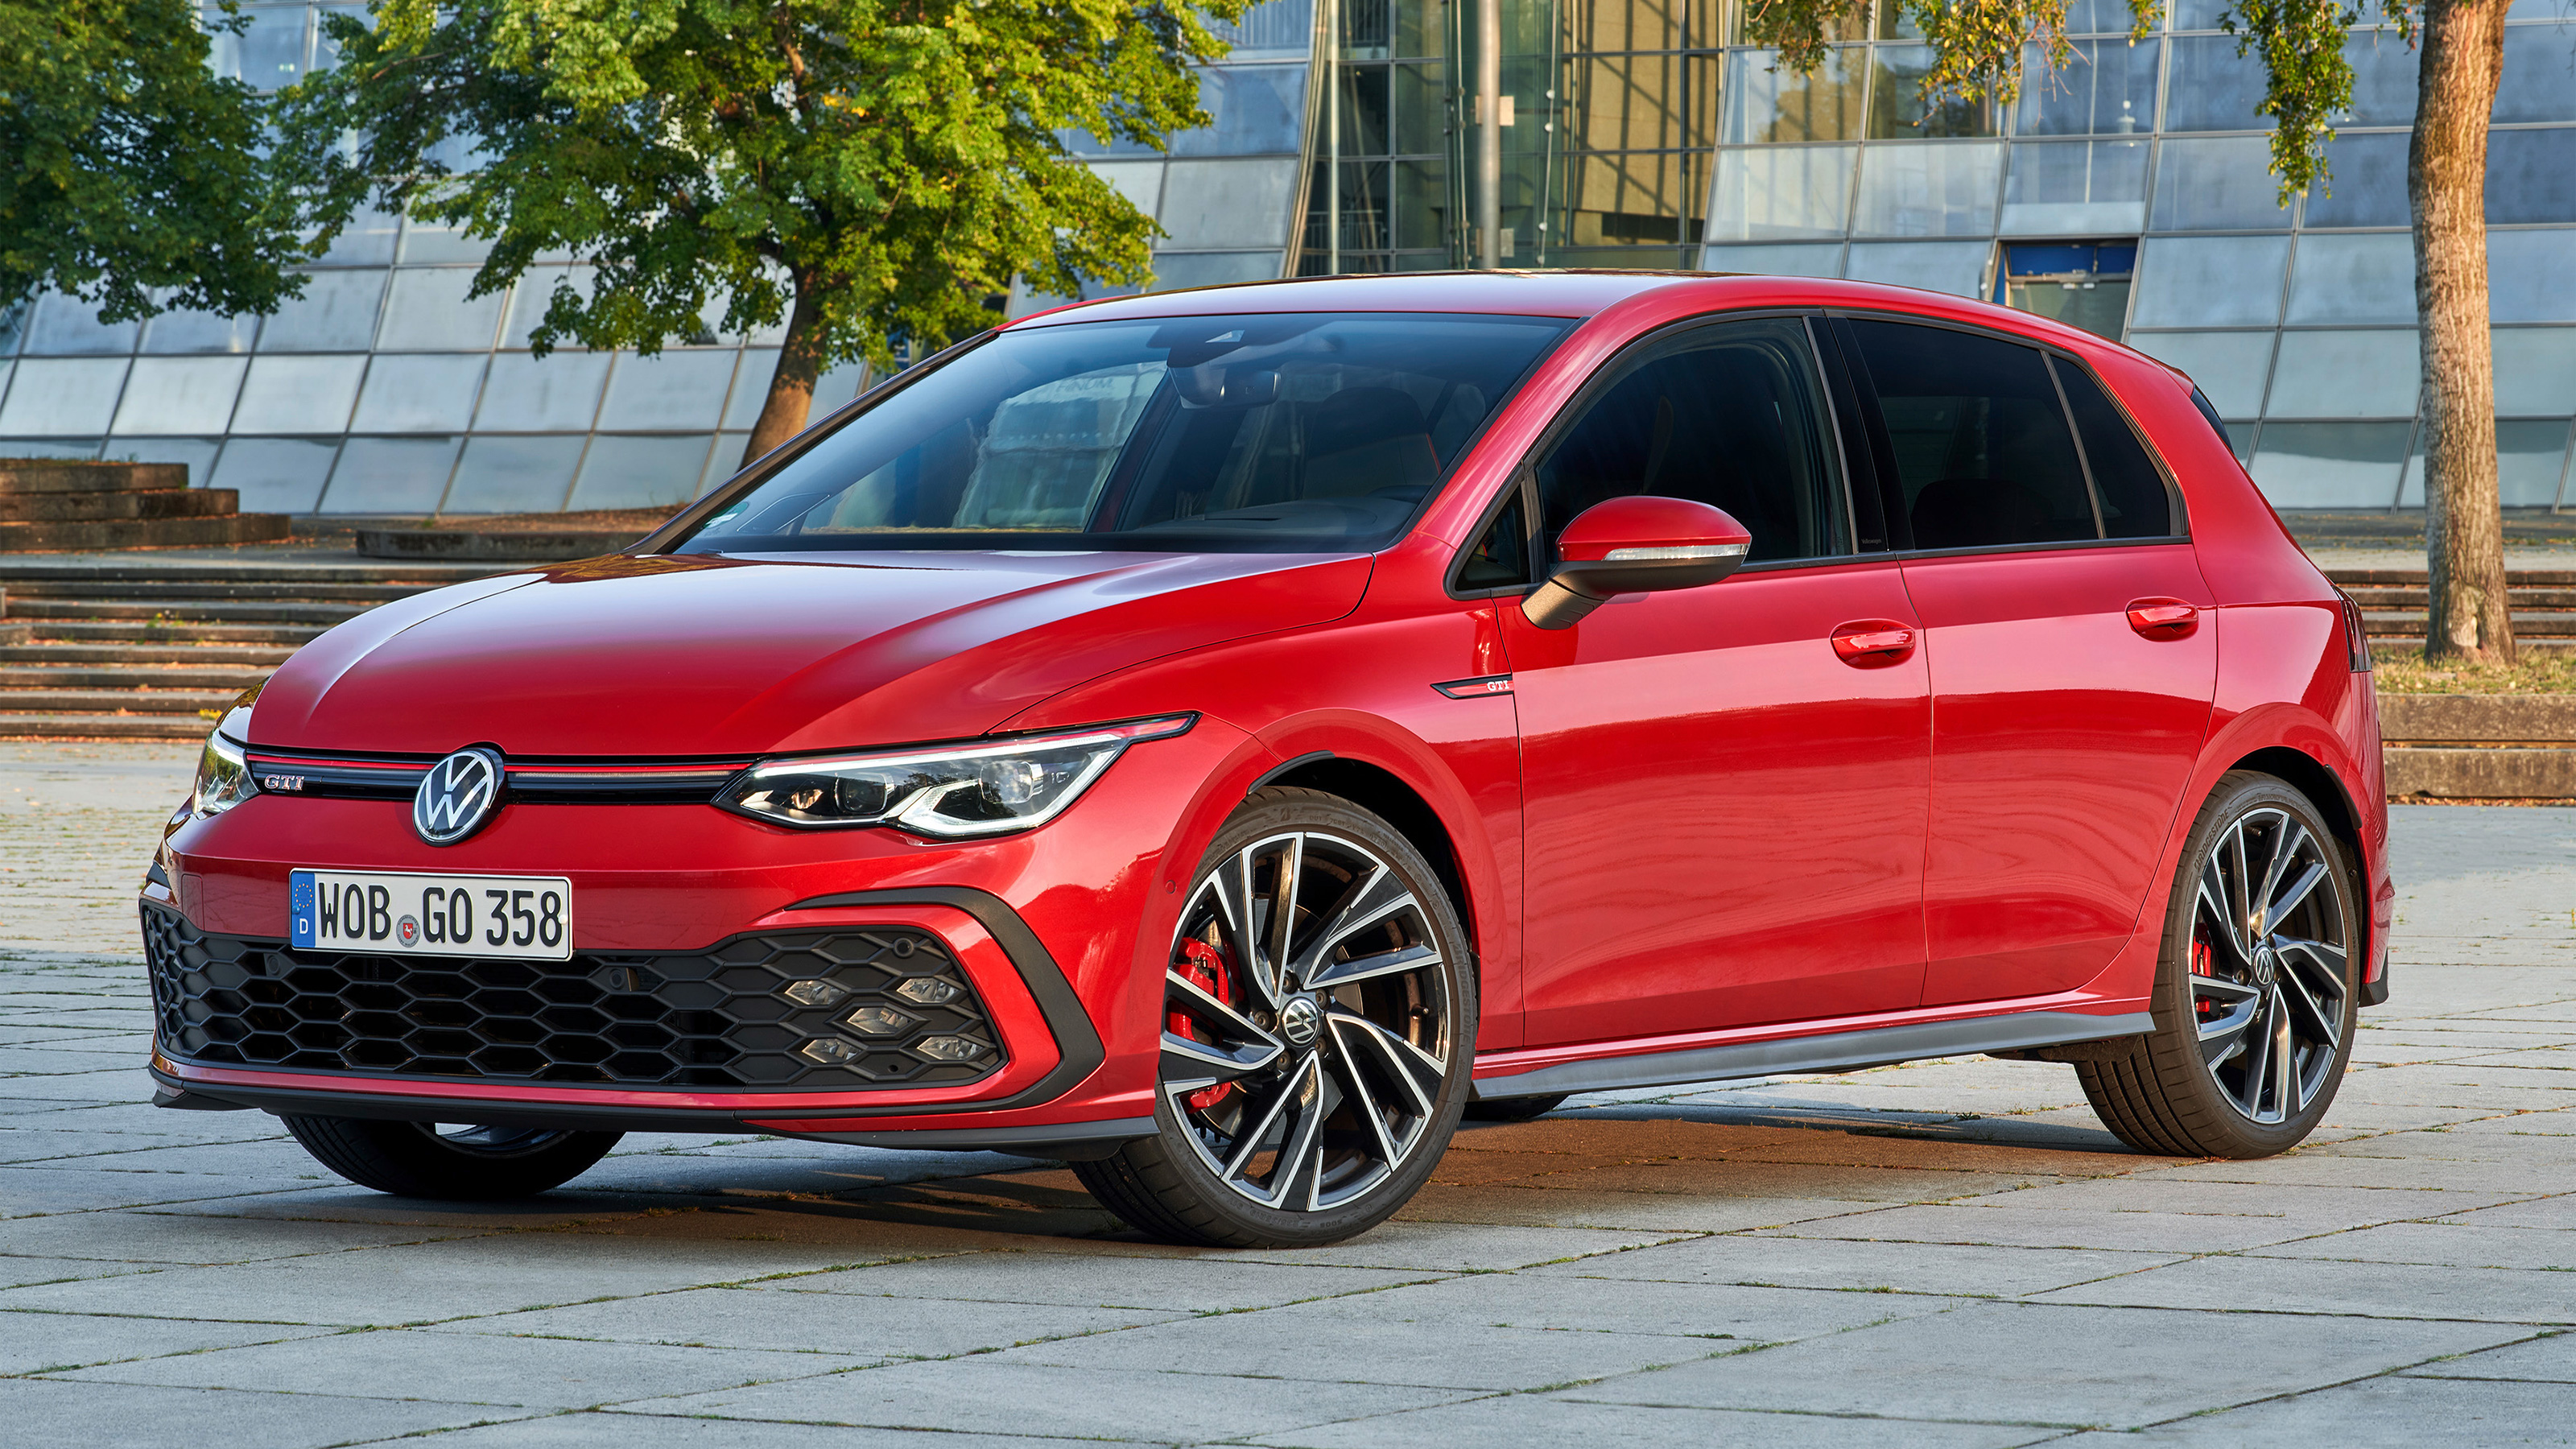 New 2020 Volkswagen Golf Gti Priced From 33 460 Auto Express